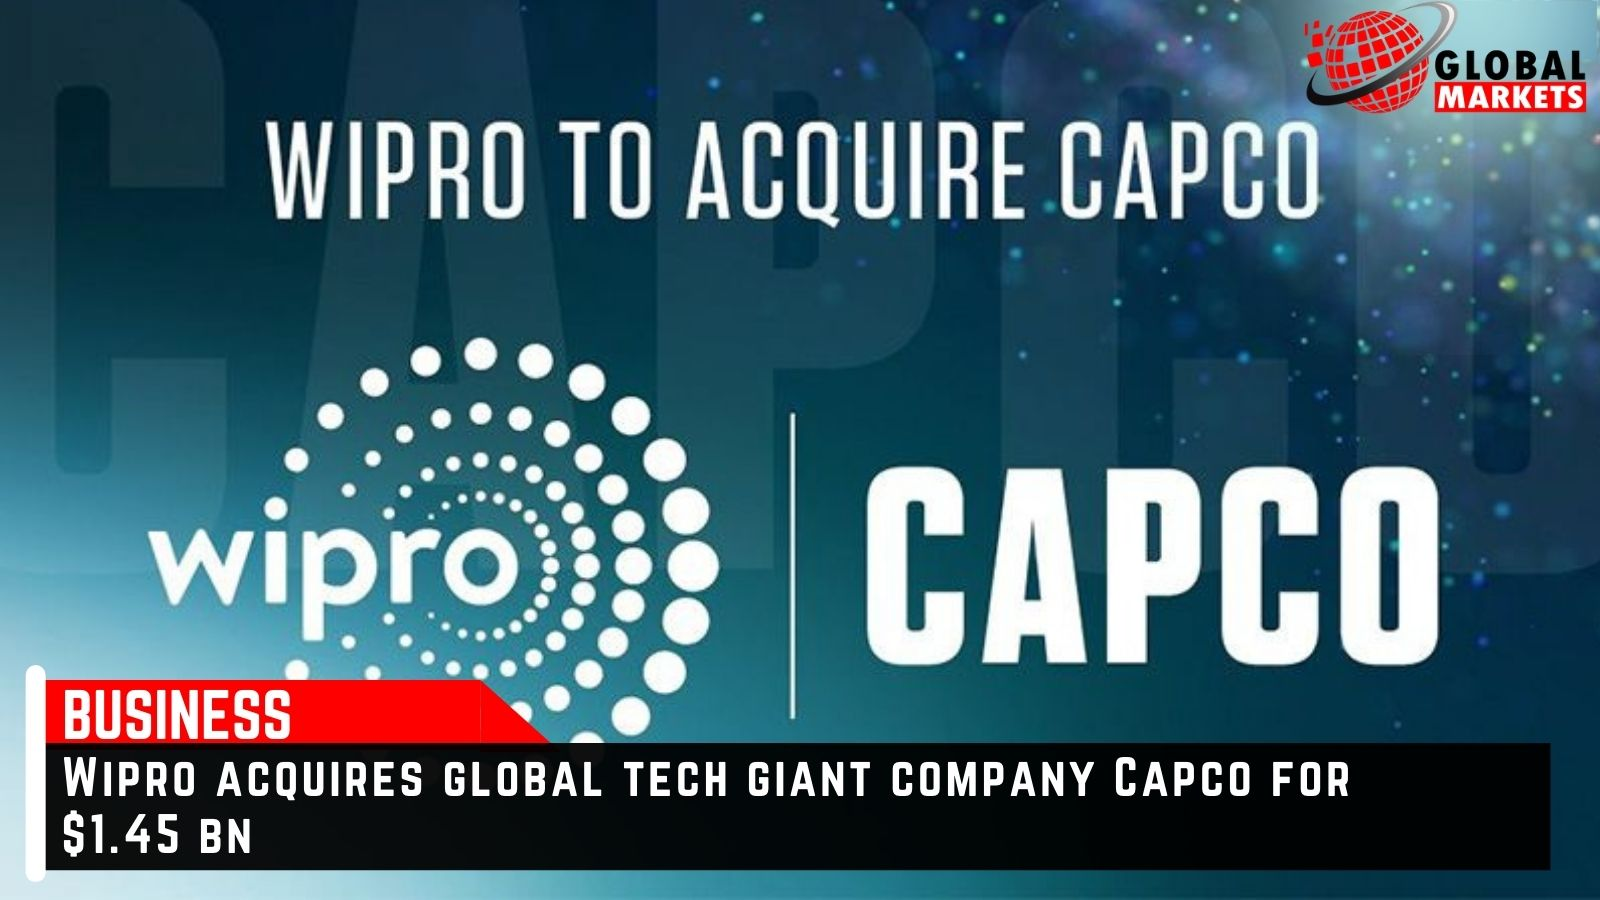 Wipro acquires global tech giant company Capco for $1.45 bn